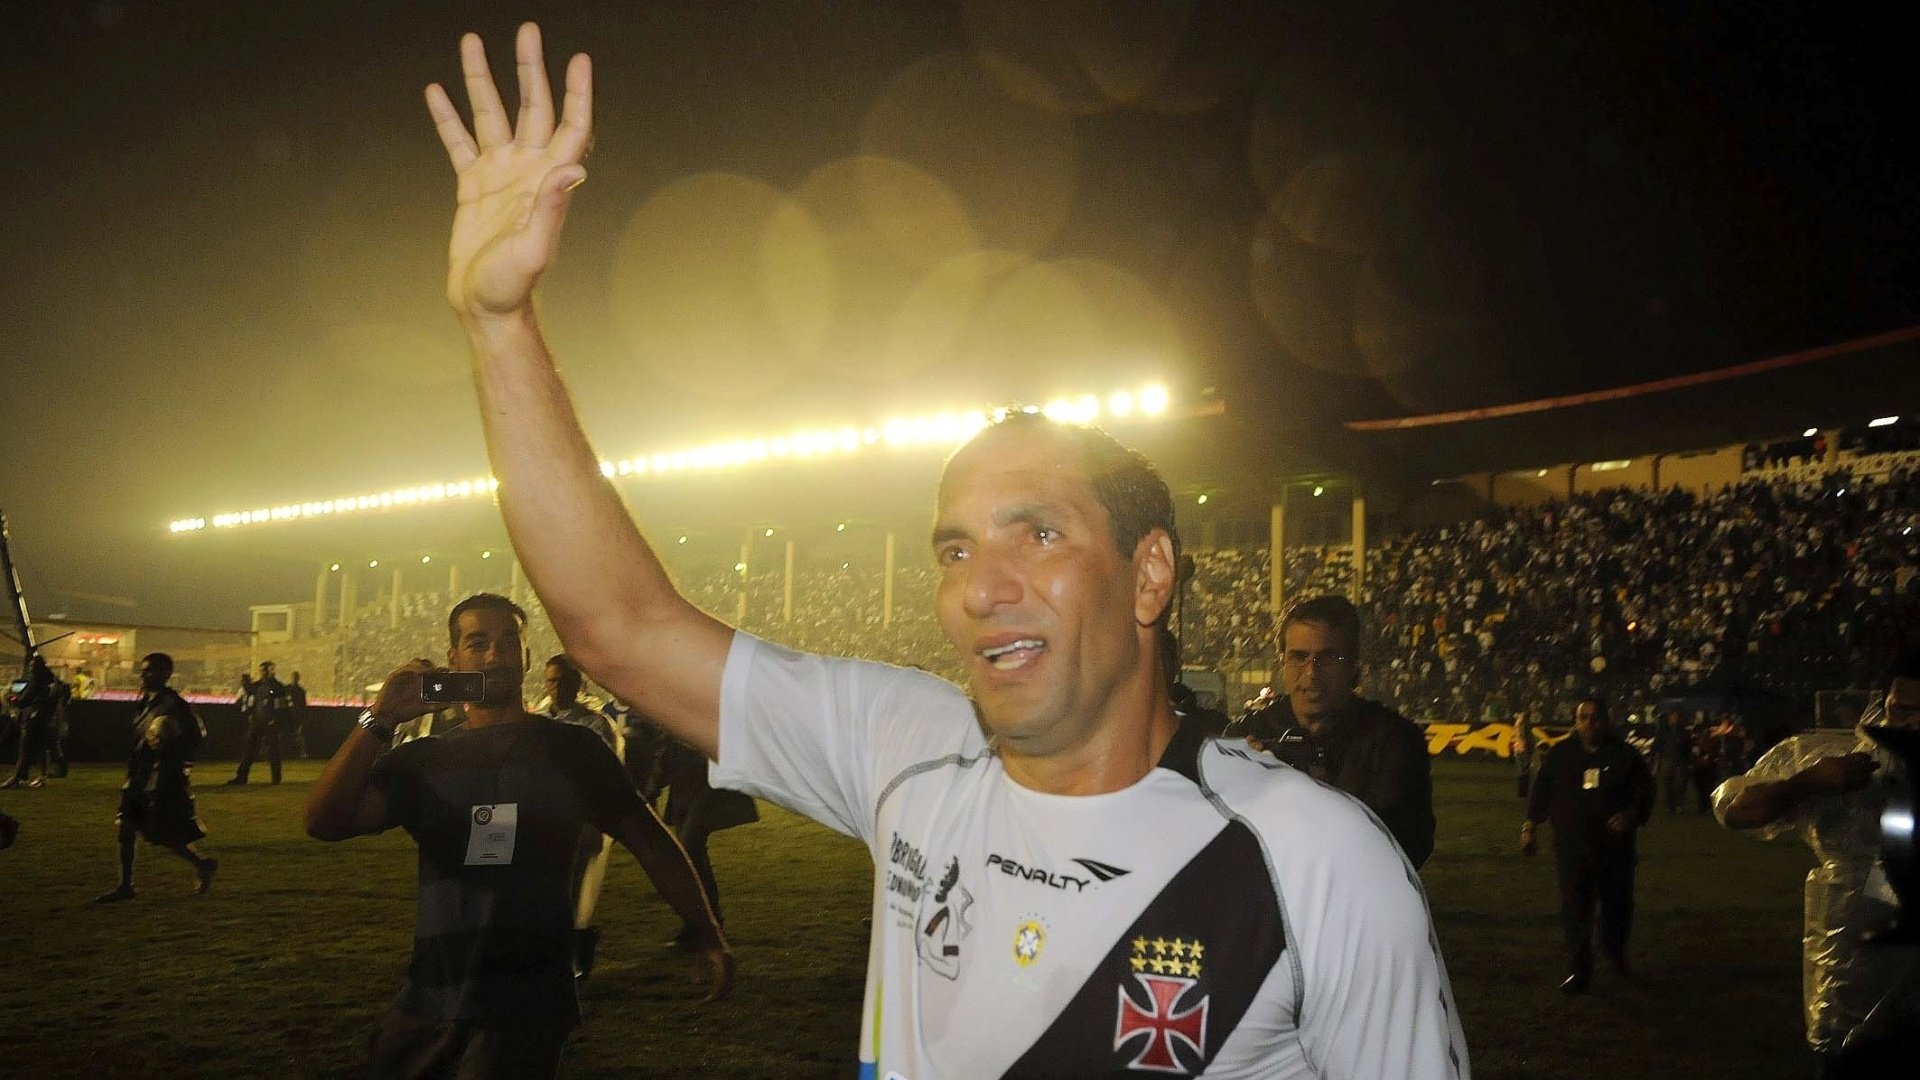 Edmundo, emocionado, acena para a torcida do Vasco aps o seu jogo de despedida, contra o Barcelona (EQU), em So Janurio